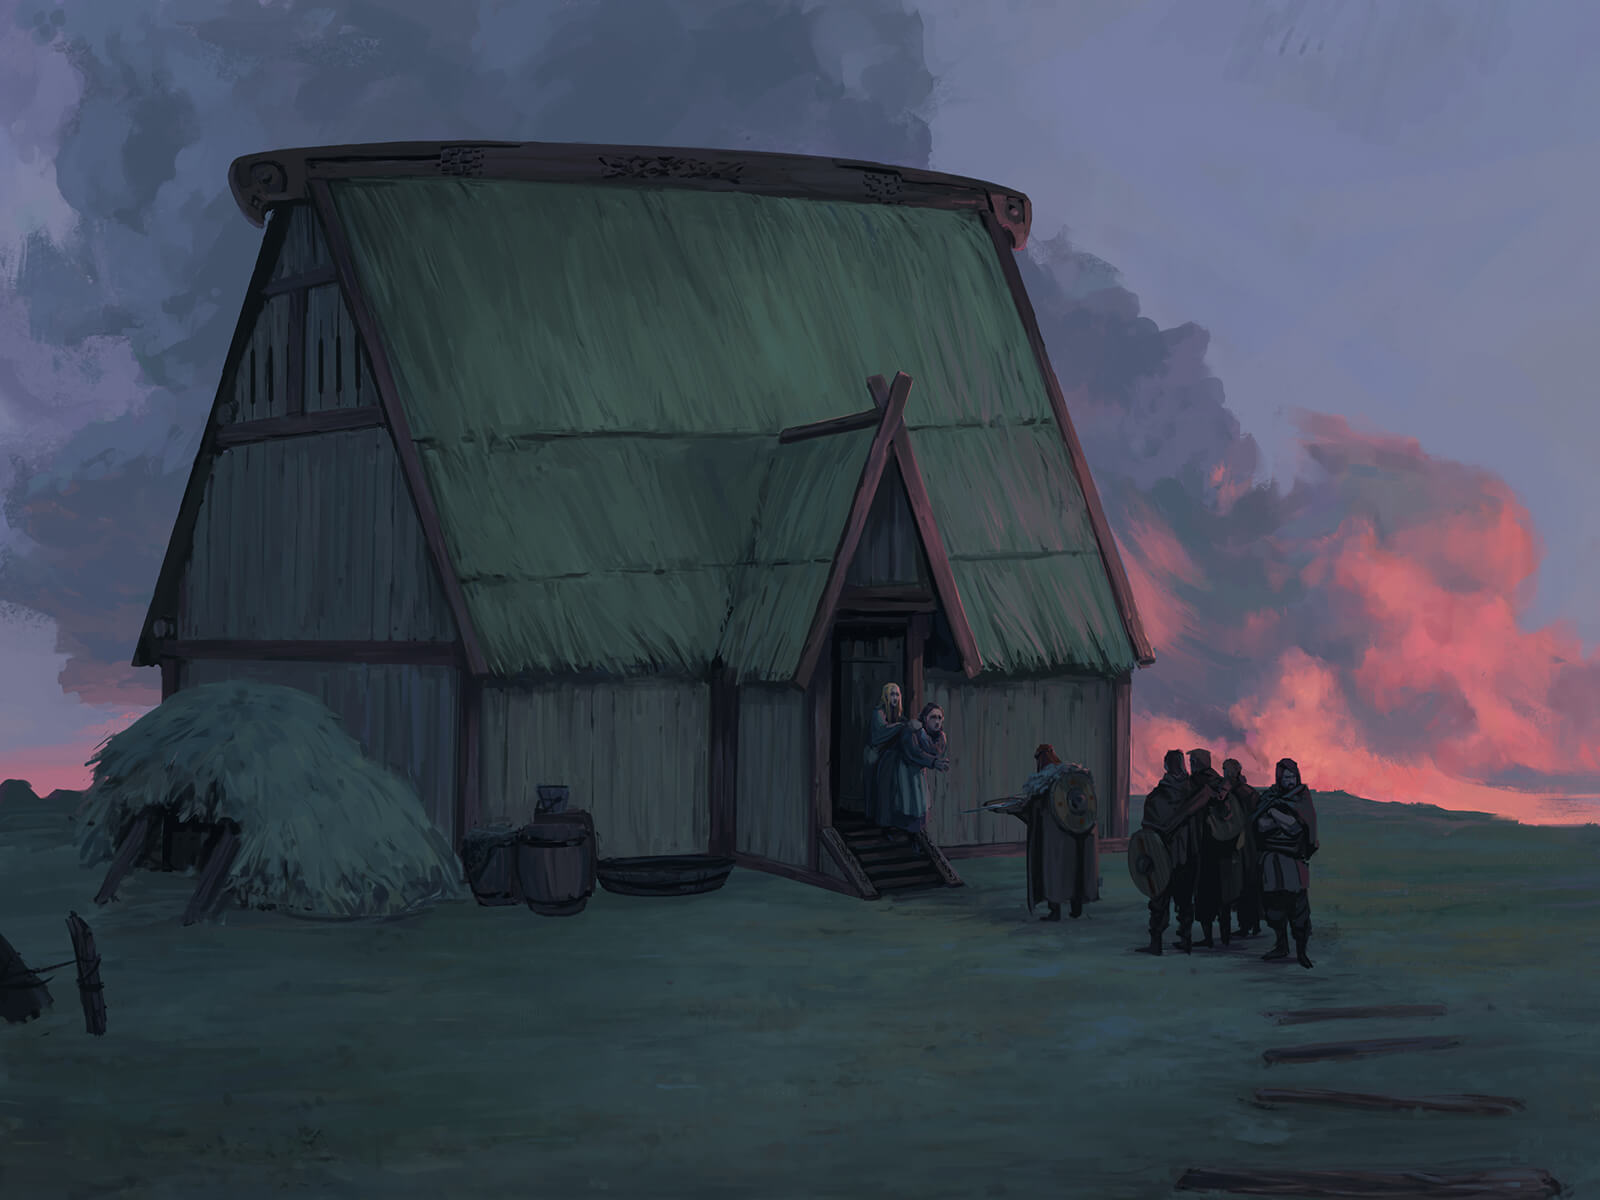 News being delivered to inhabitants of a thatched barn at sunset